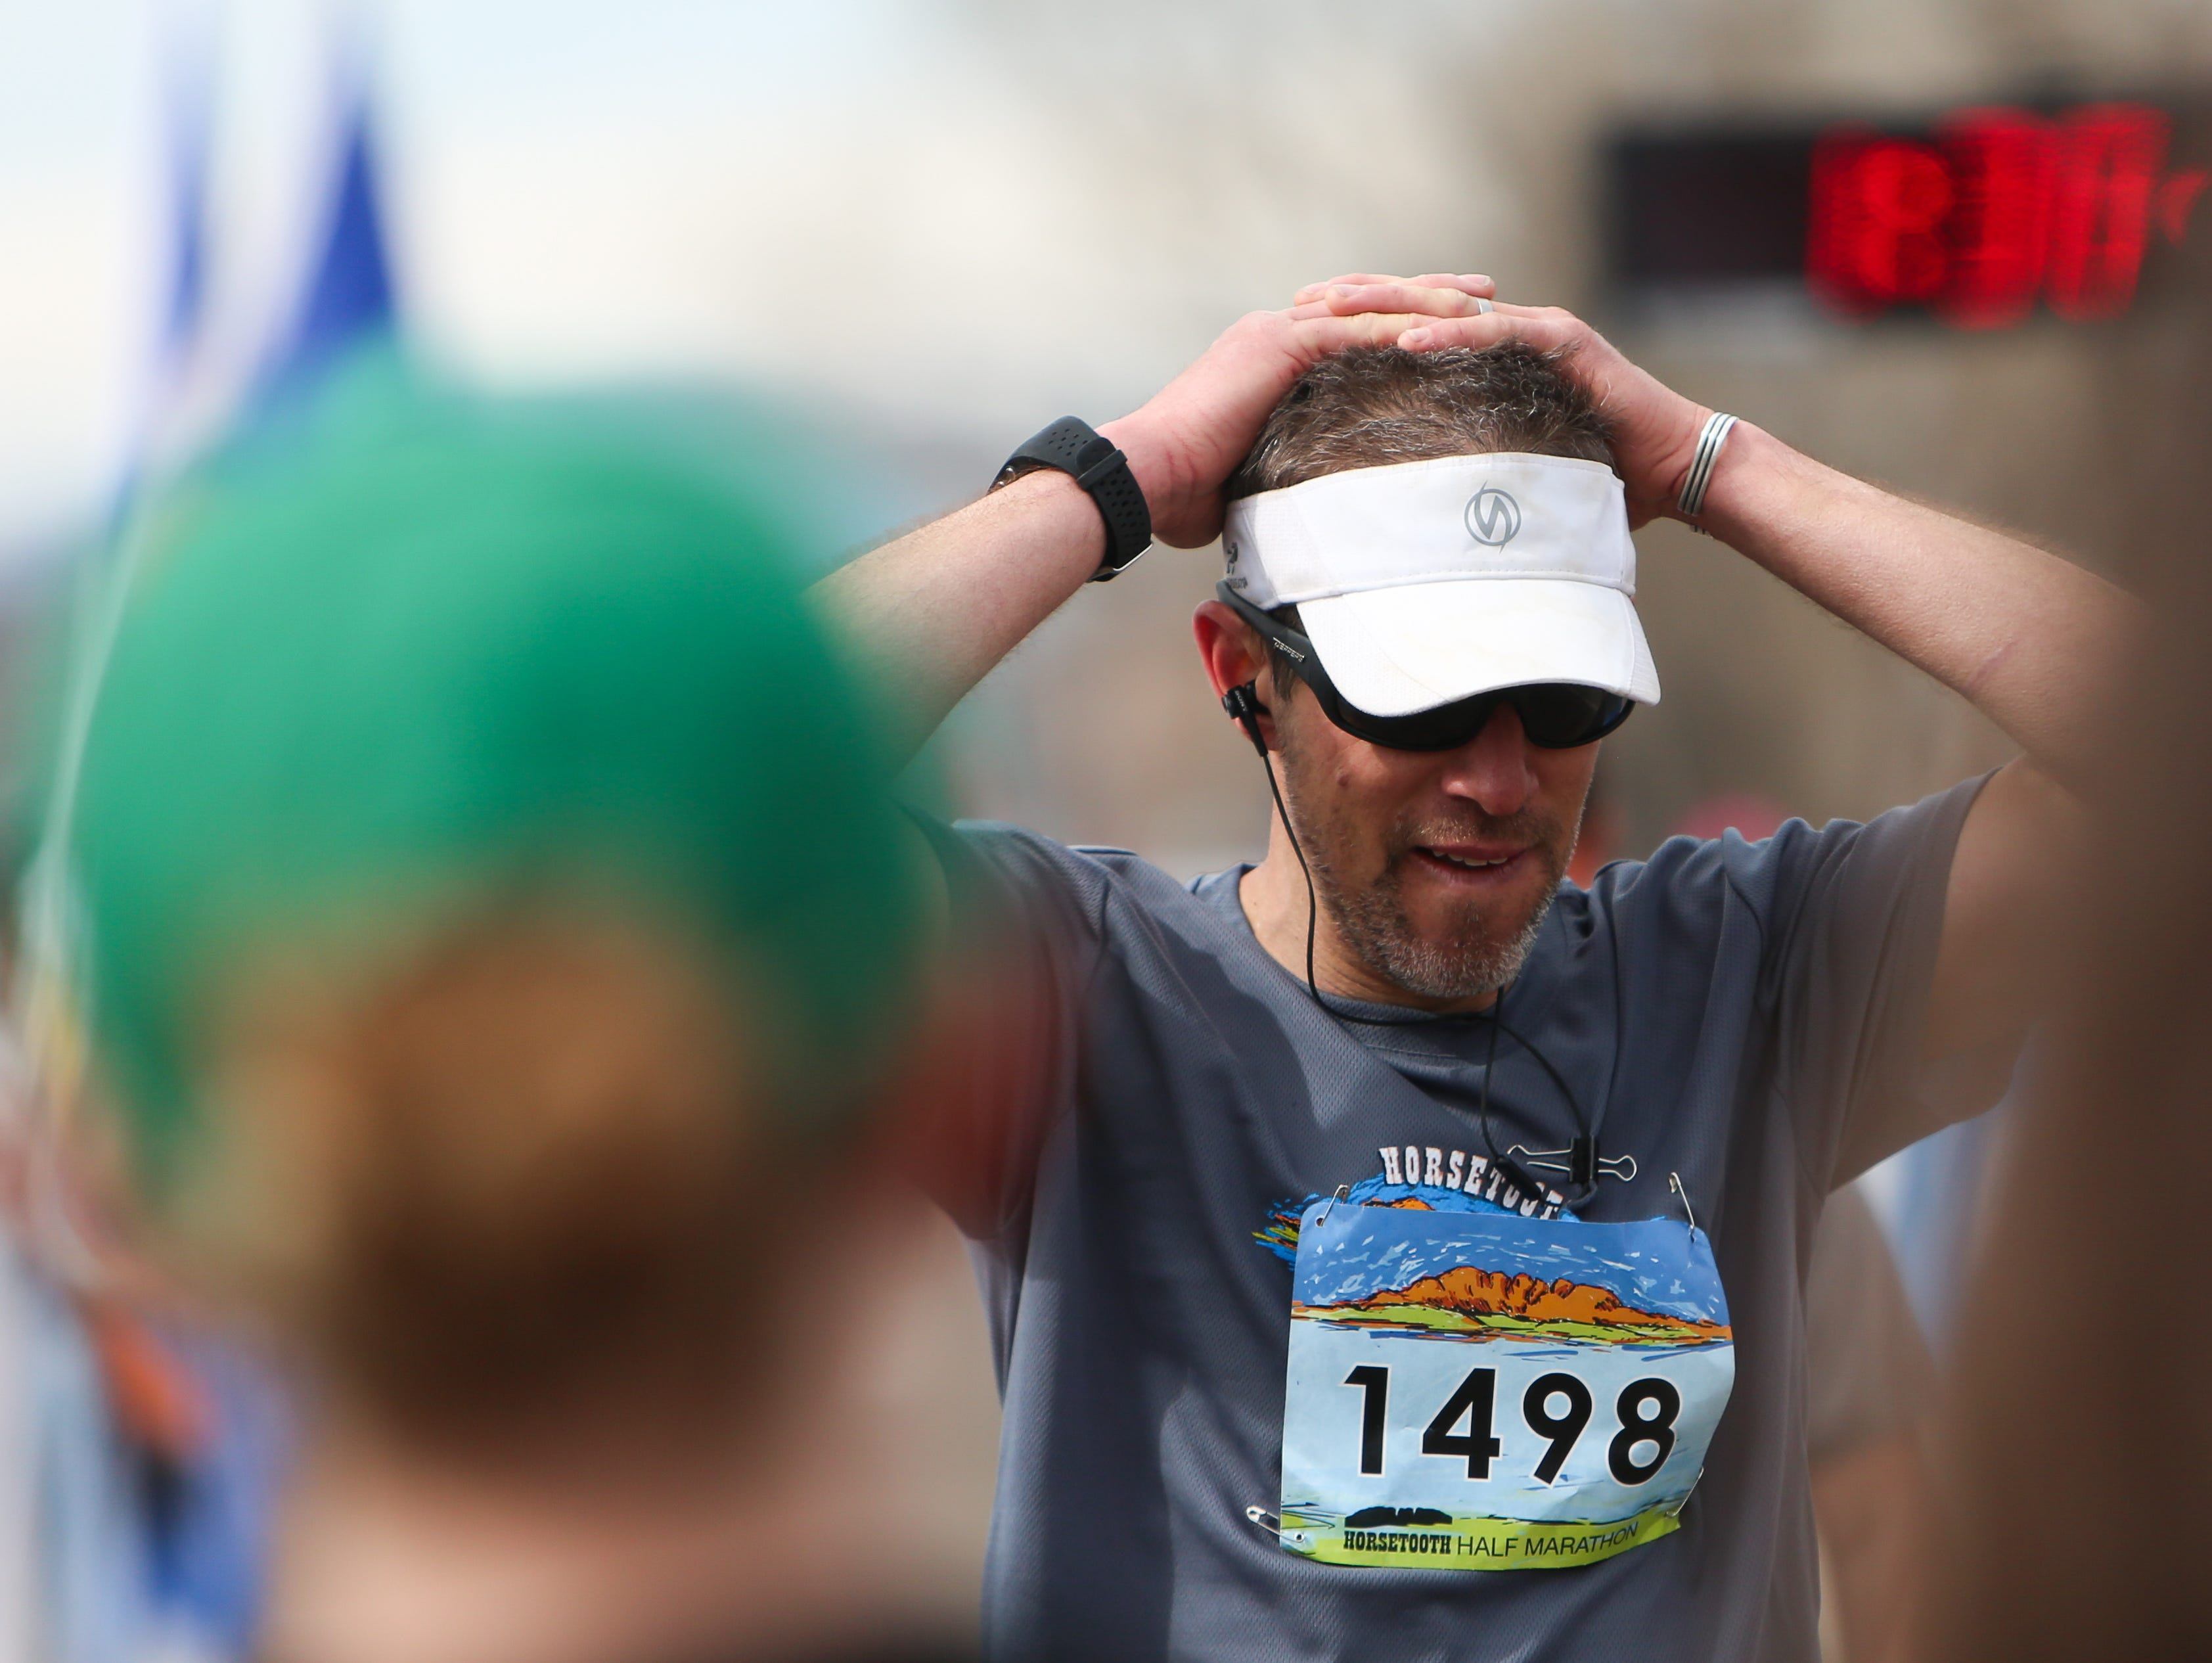 Micah Whitman catches his breath after finishing the Half Marathon.